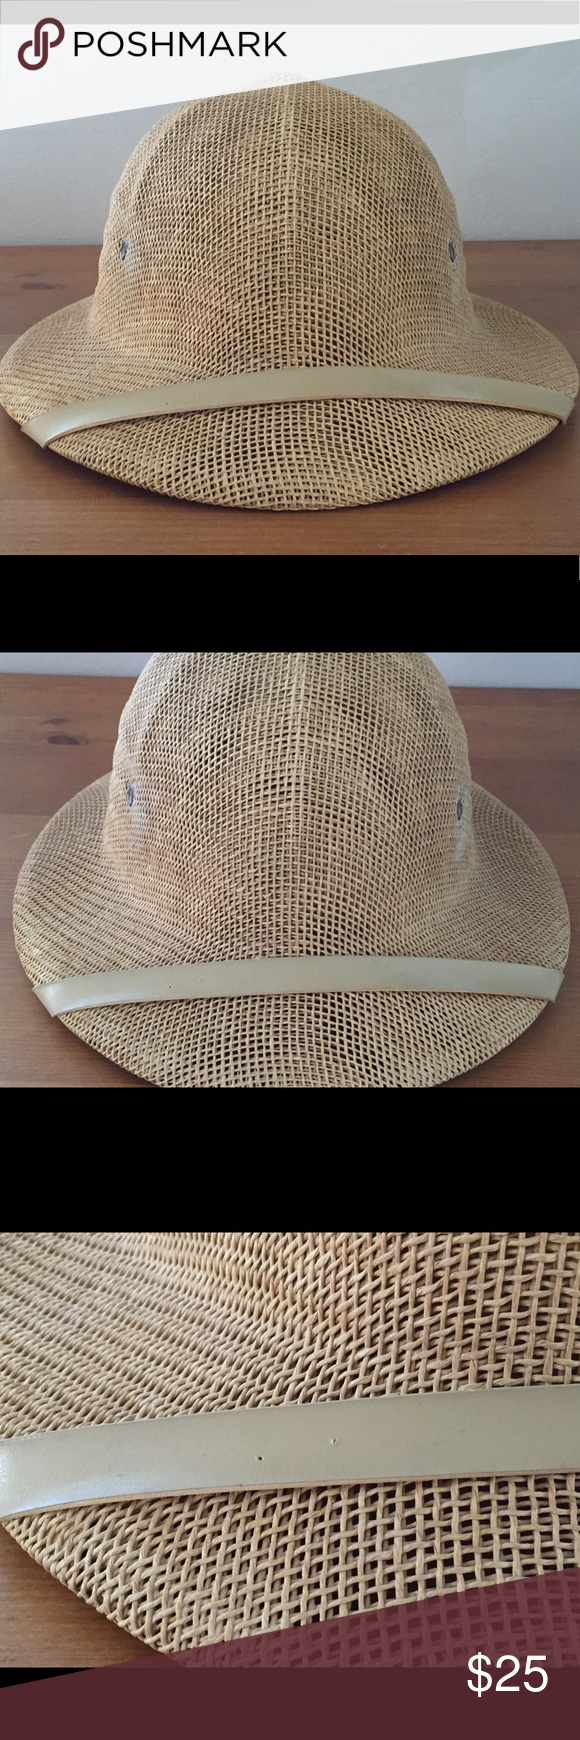 5c8810b1e52c7b Vintage Sun Fari Safari Hat with adjustable band Original Safari hat! So  awesome. Reminds